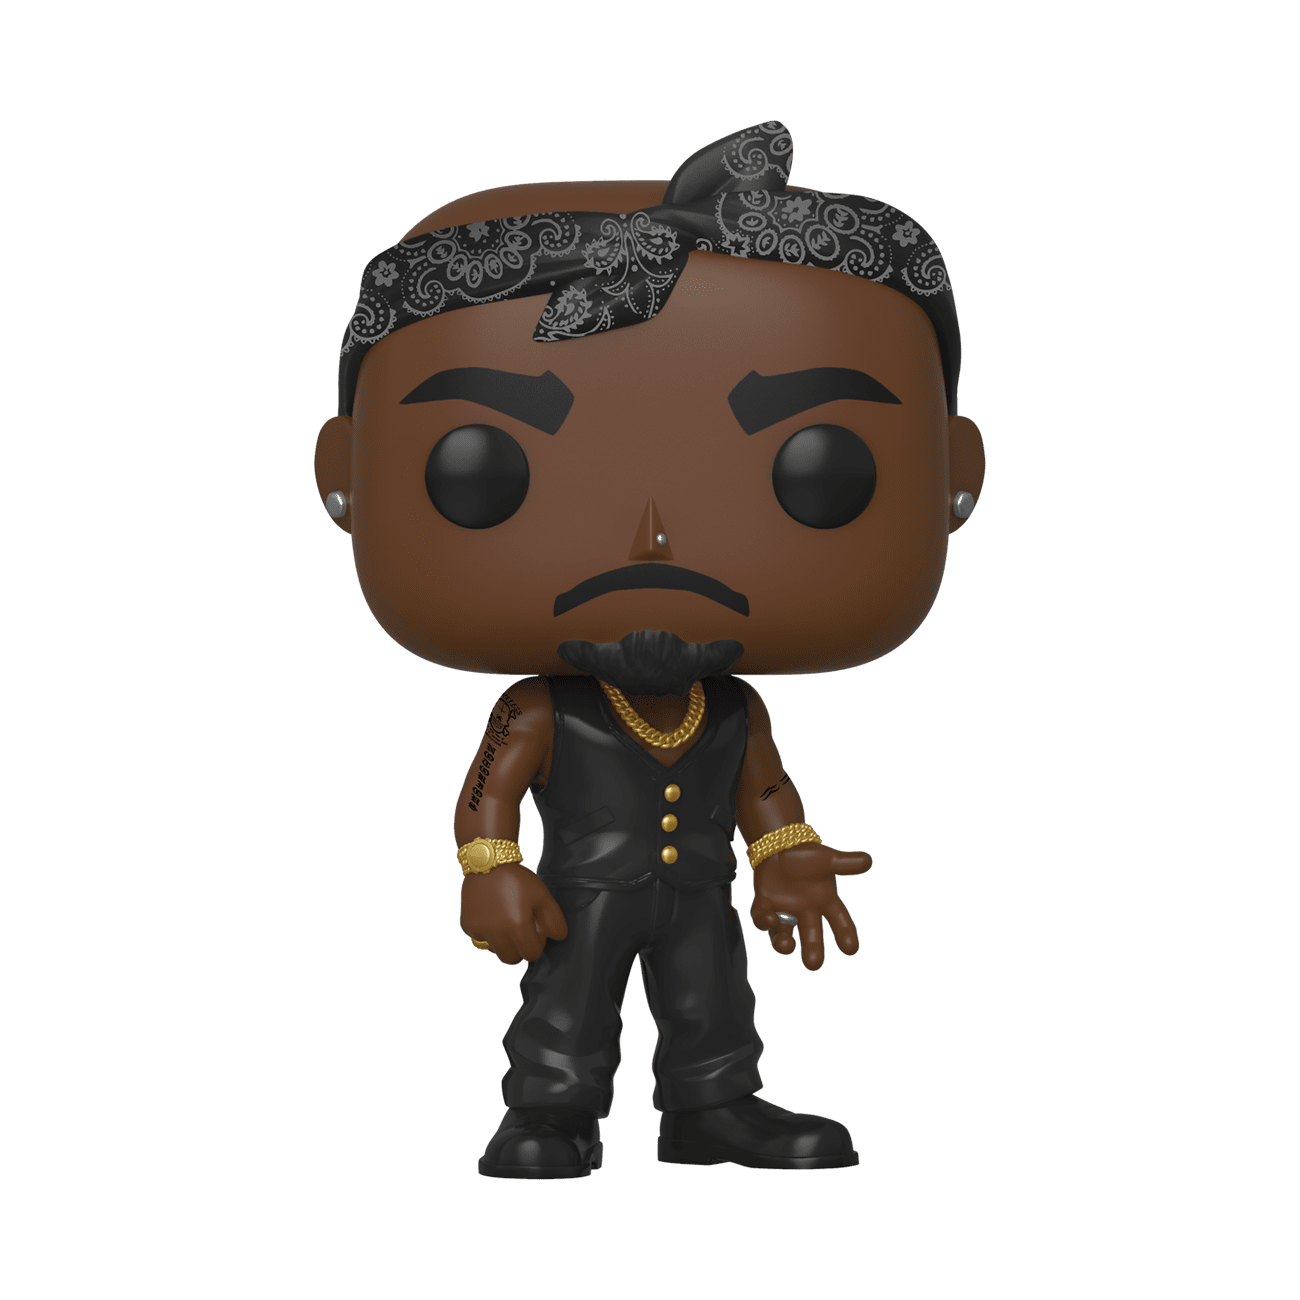 Funko Tupac Vest with Bandana Pop! Vinyl Figure